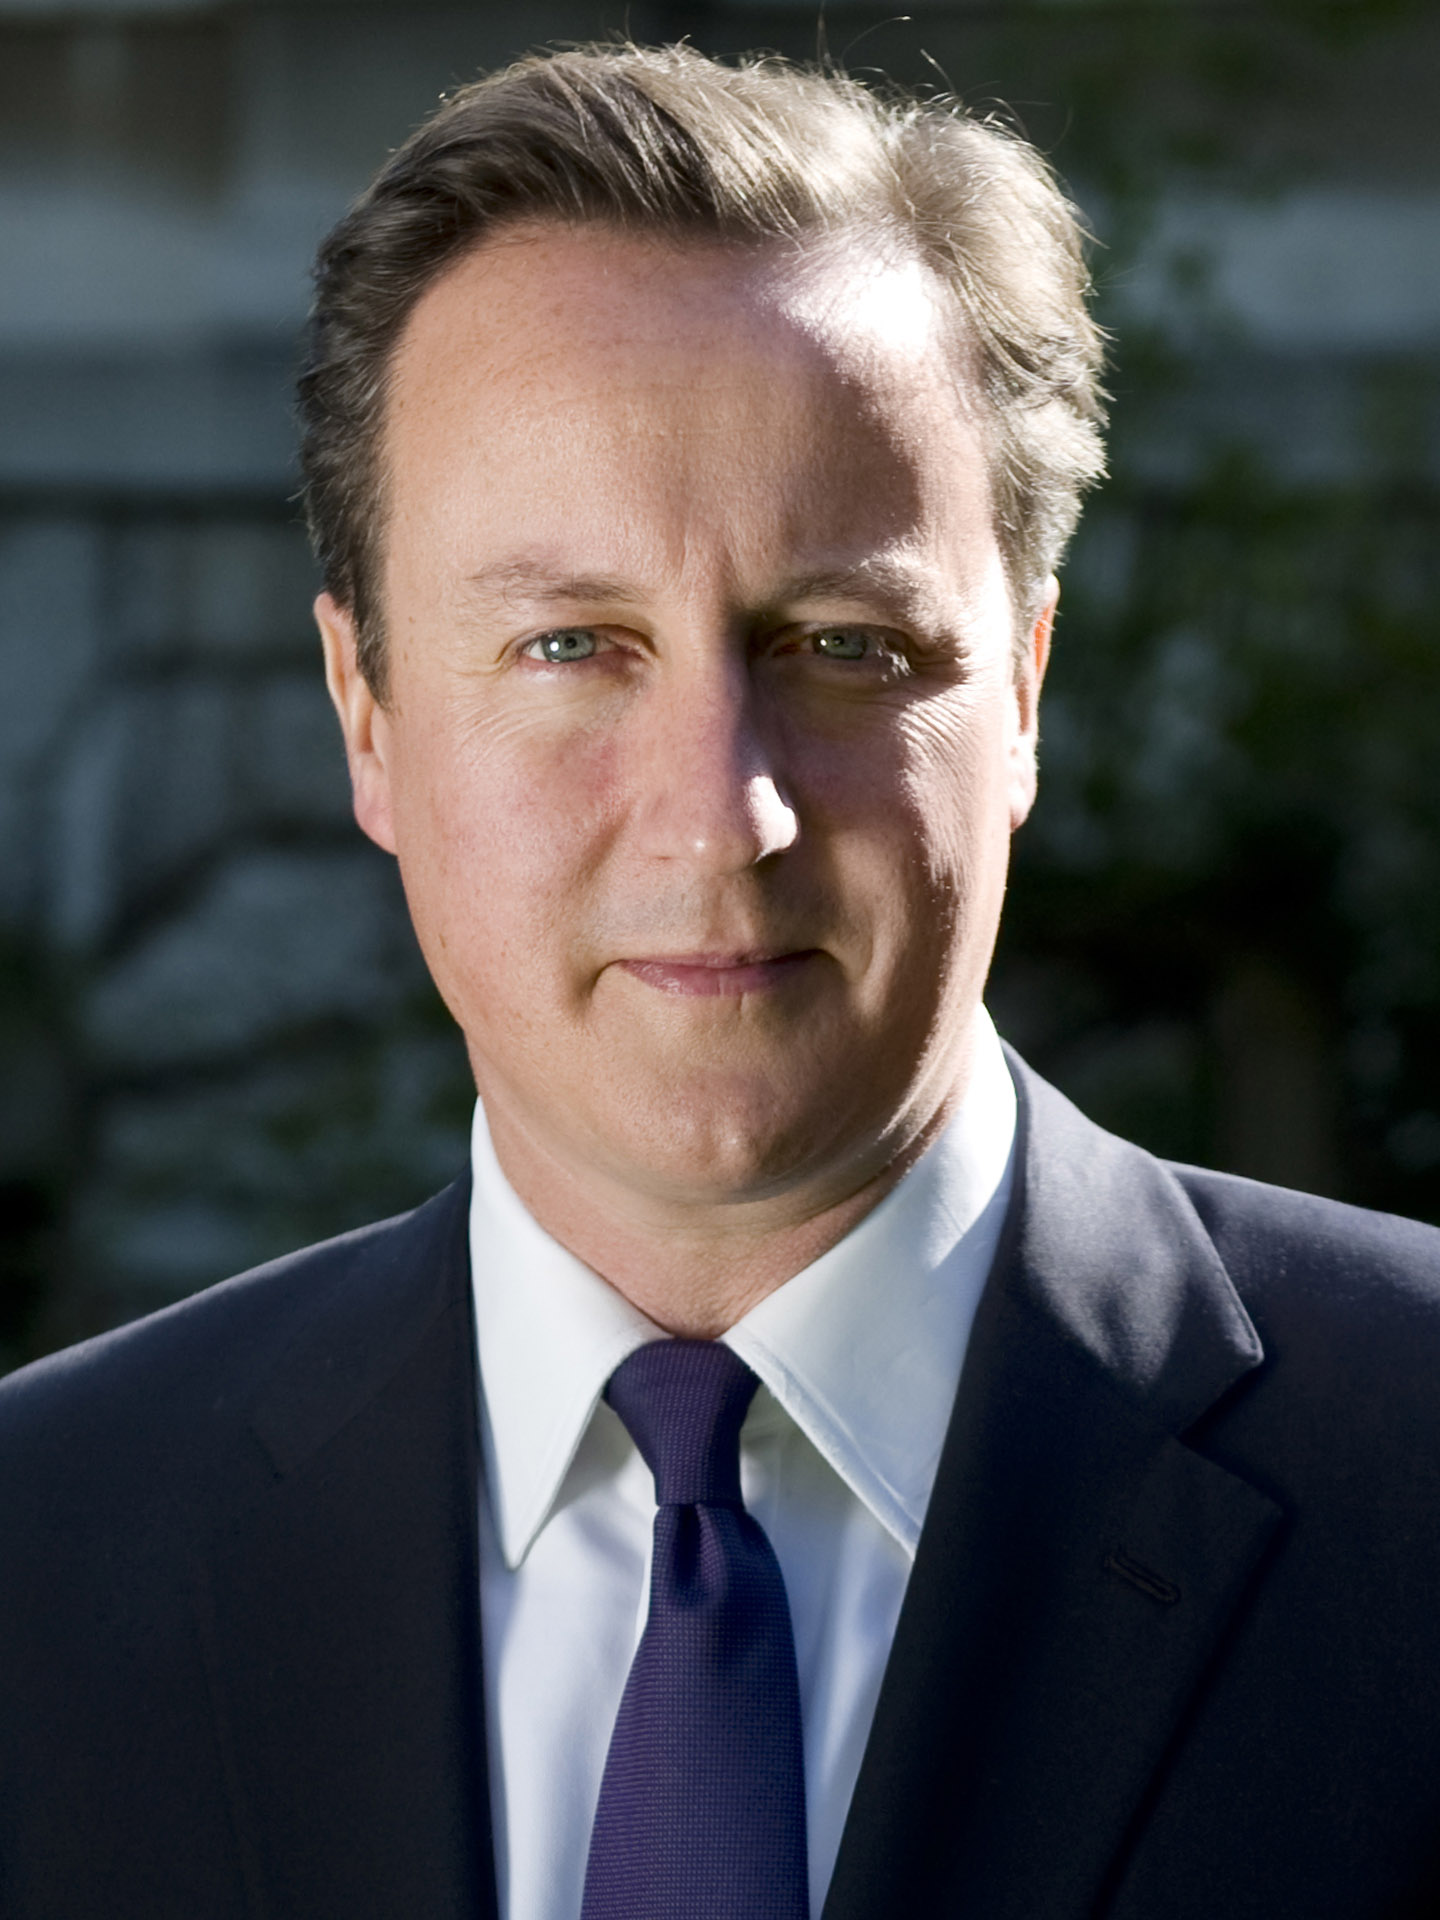 Britischer Premier David Cameron, Foto: http://www.number10.gov.uk, Open Government Licence v2.0